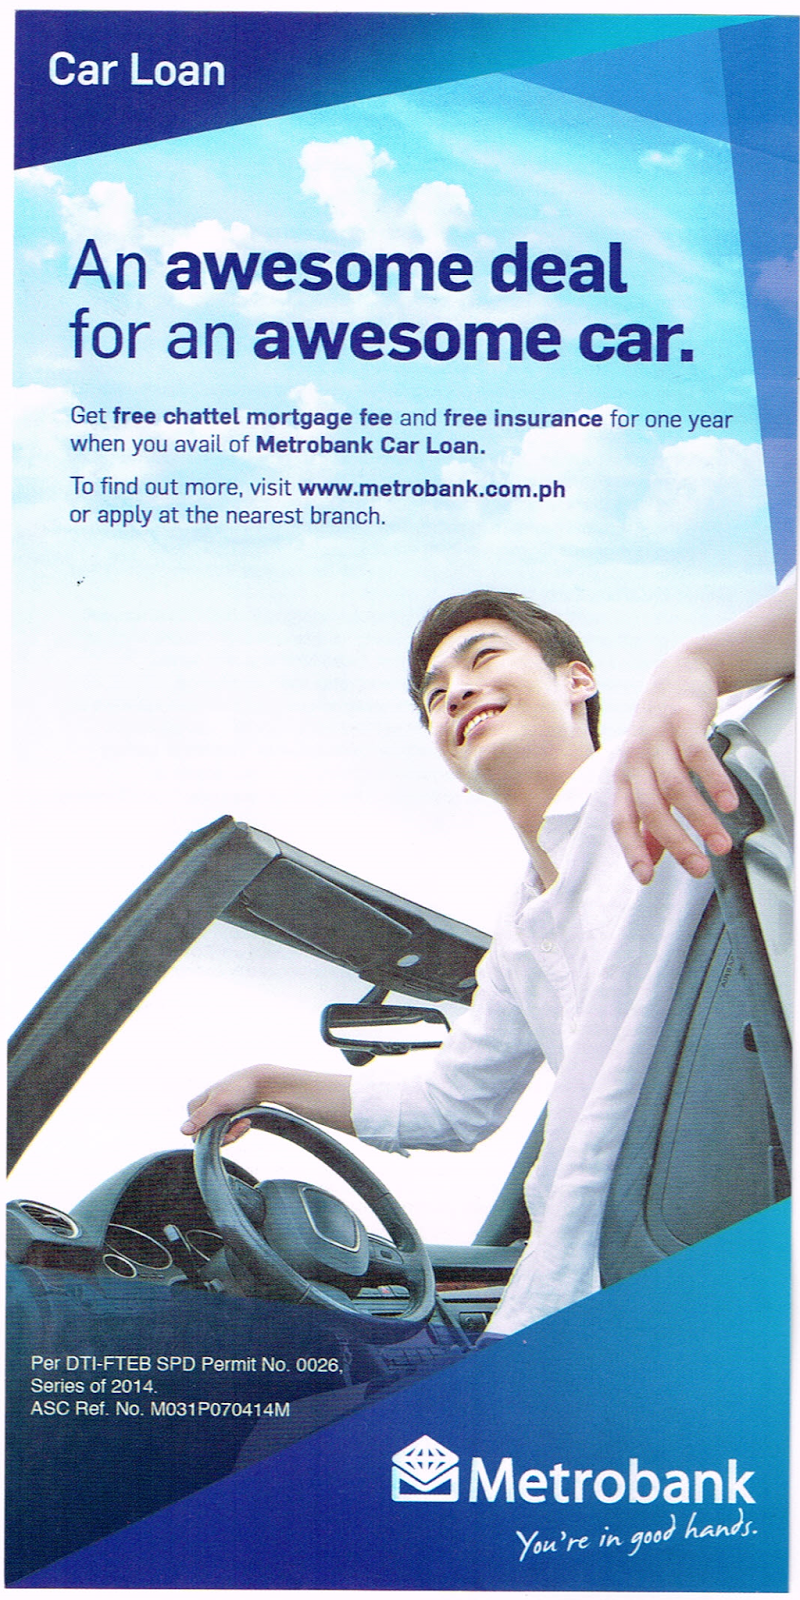 Metrobank Car Loan Promo